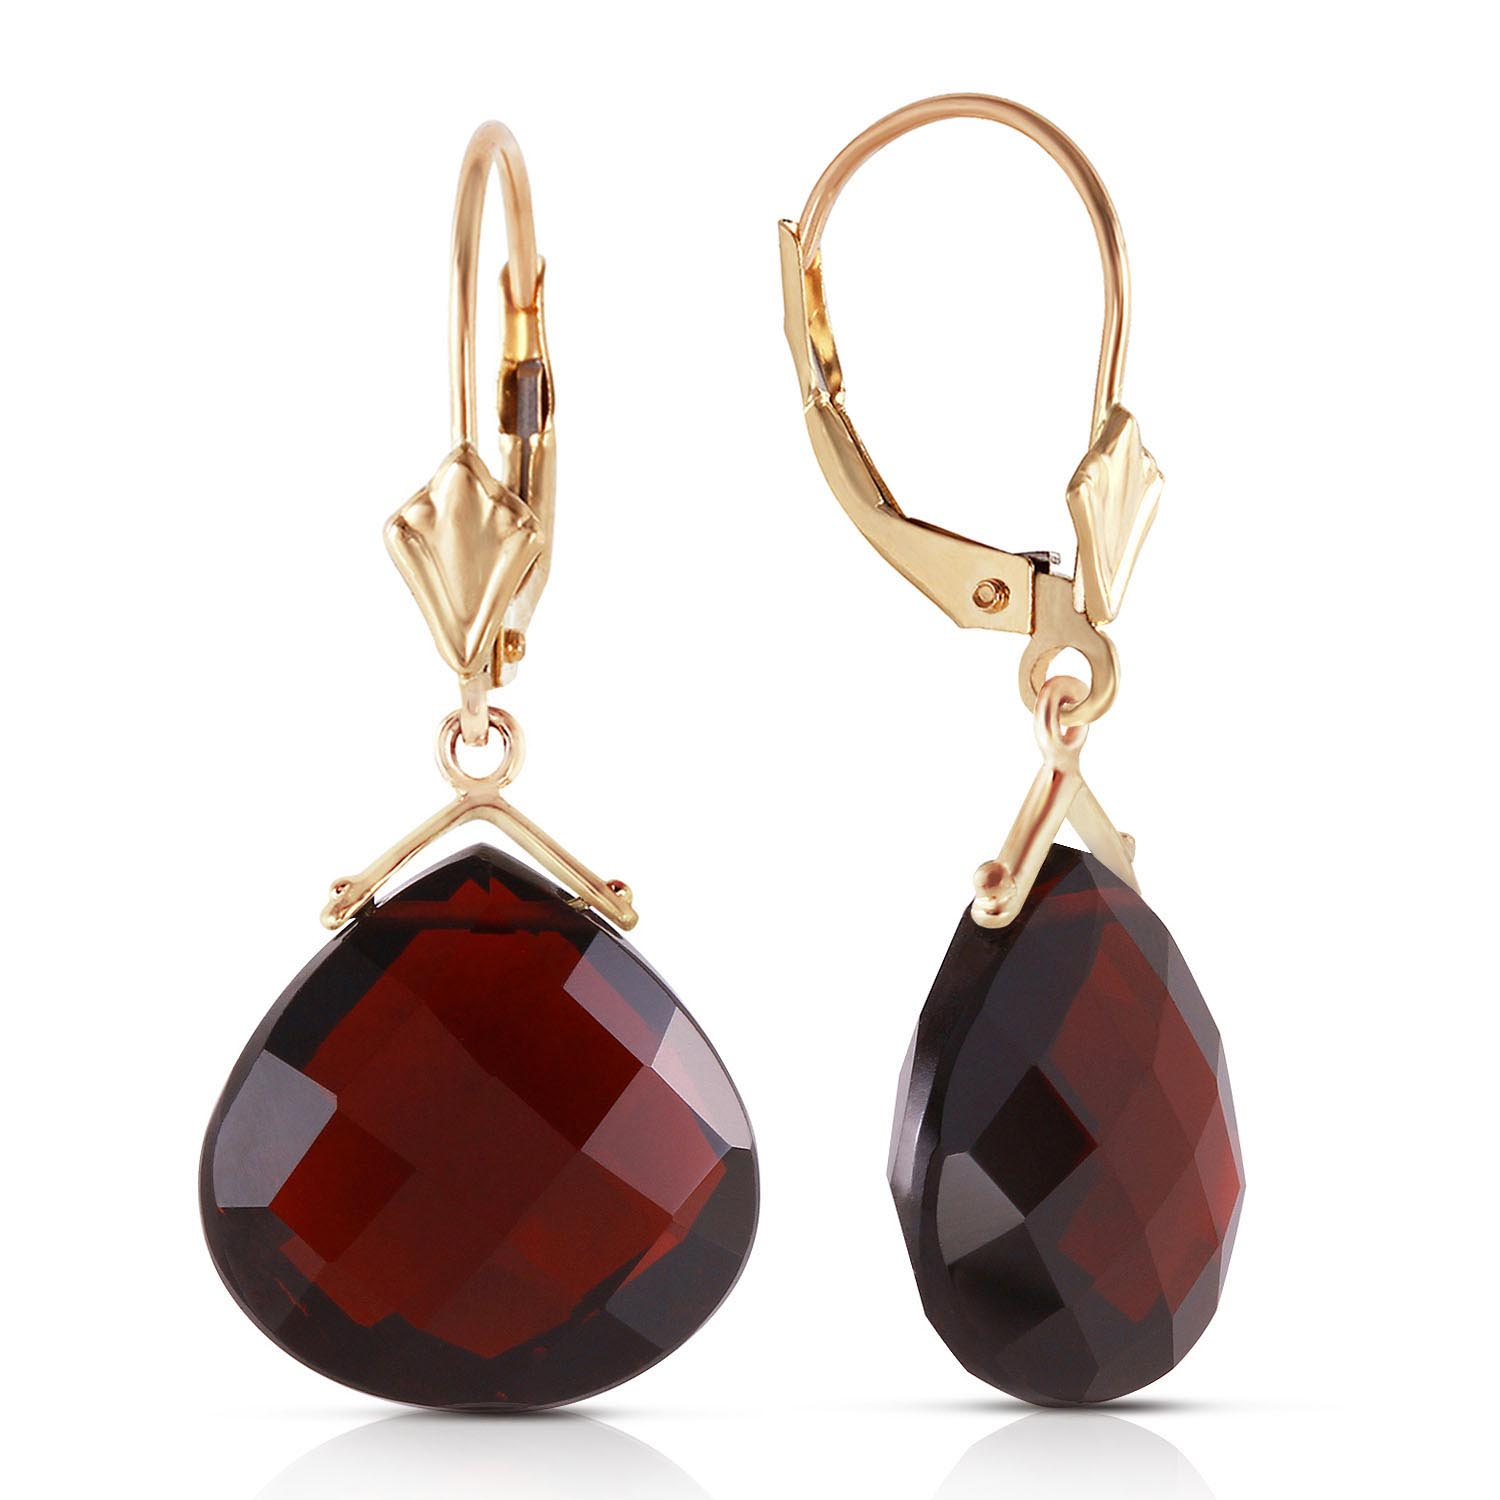 Garnet Star Drop Earrings 17 ctw in 9ct Gold